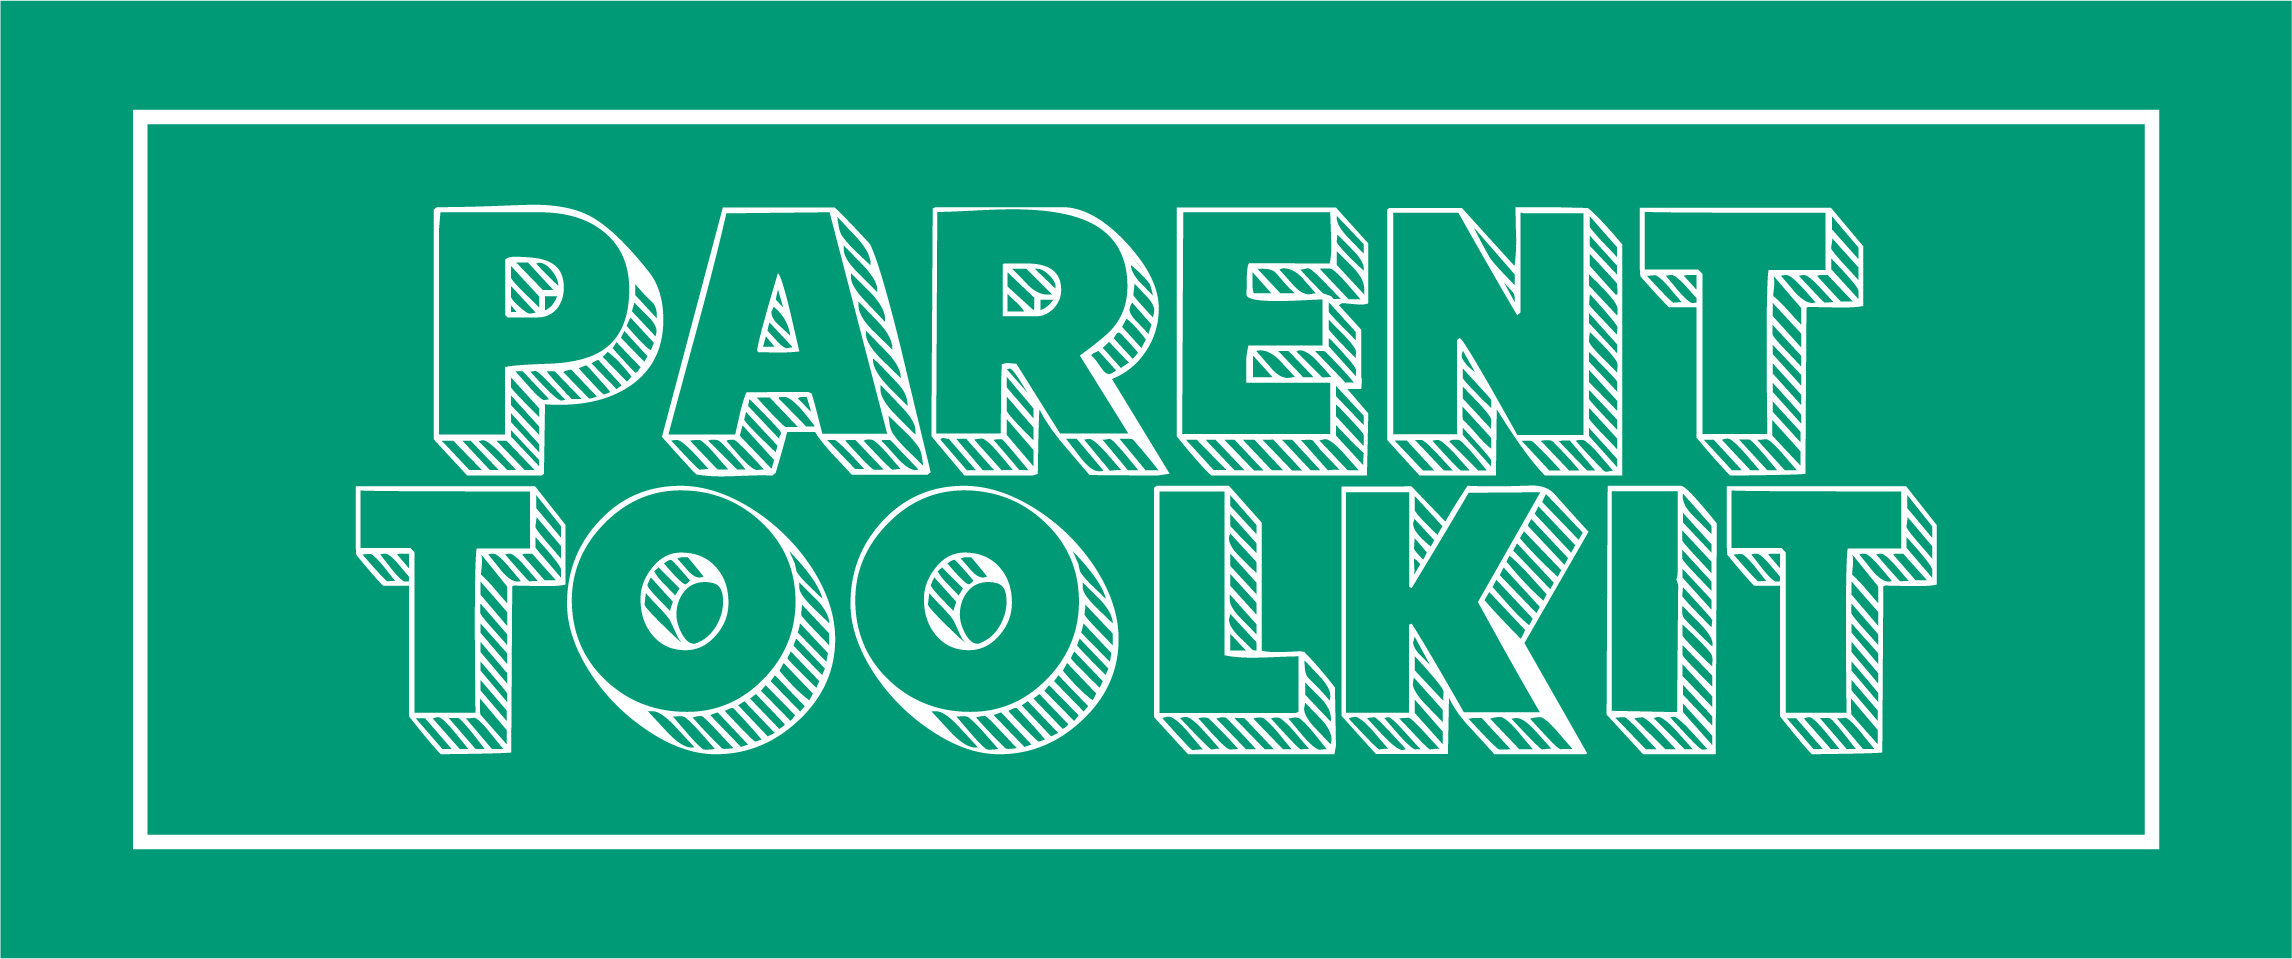 Parent toolkit logo.jpg